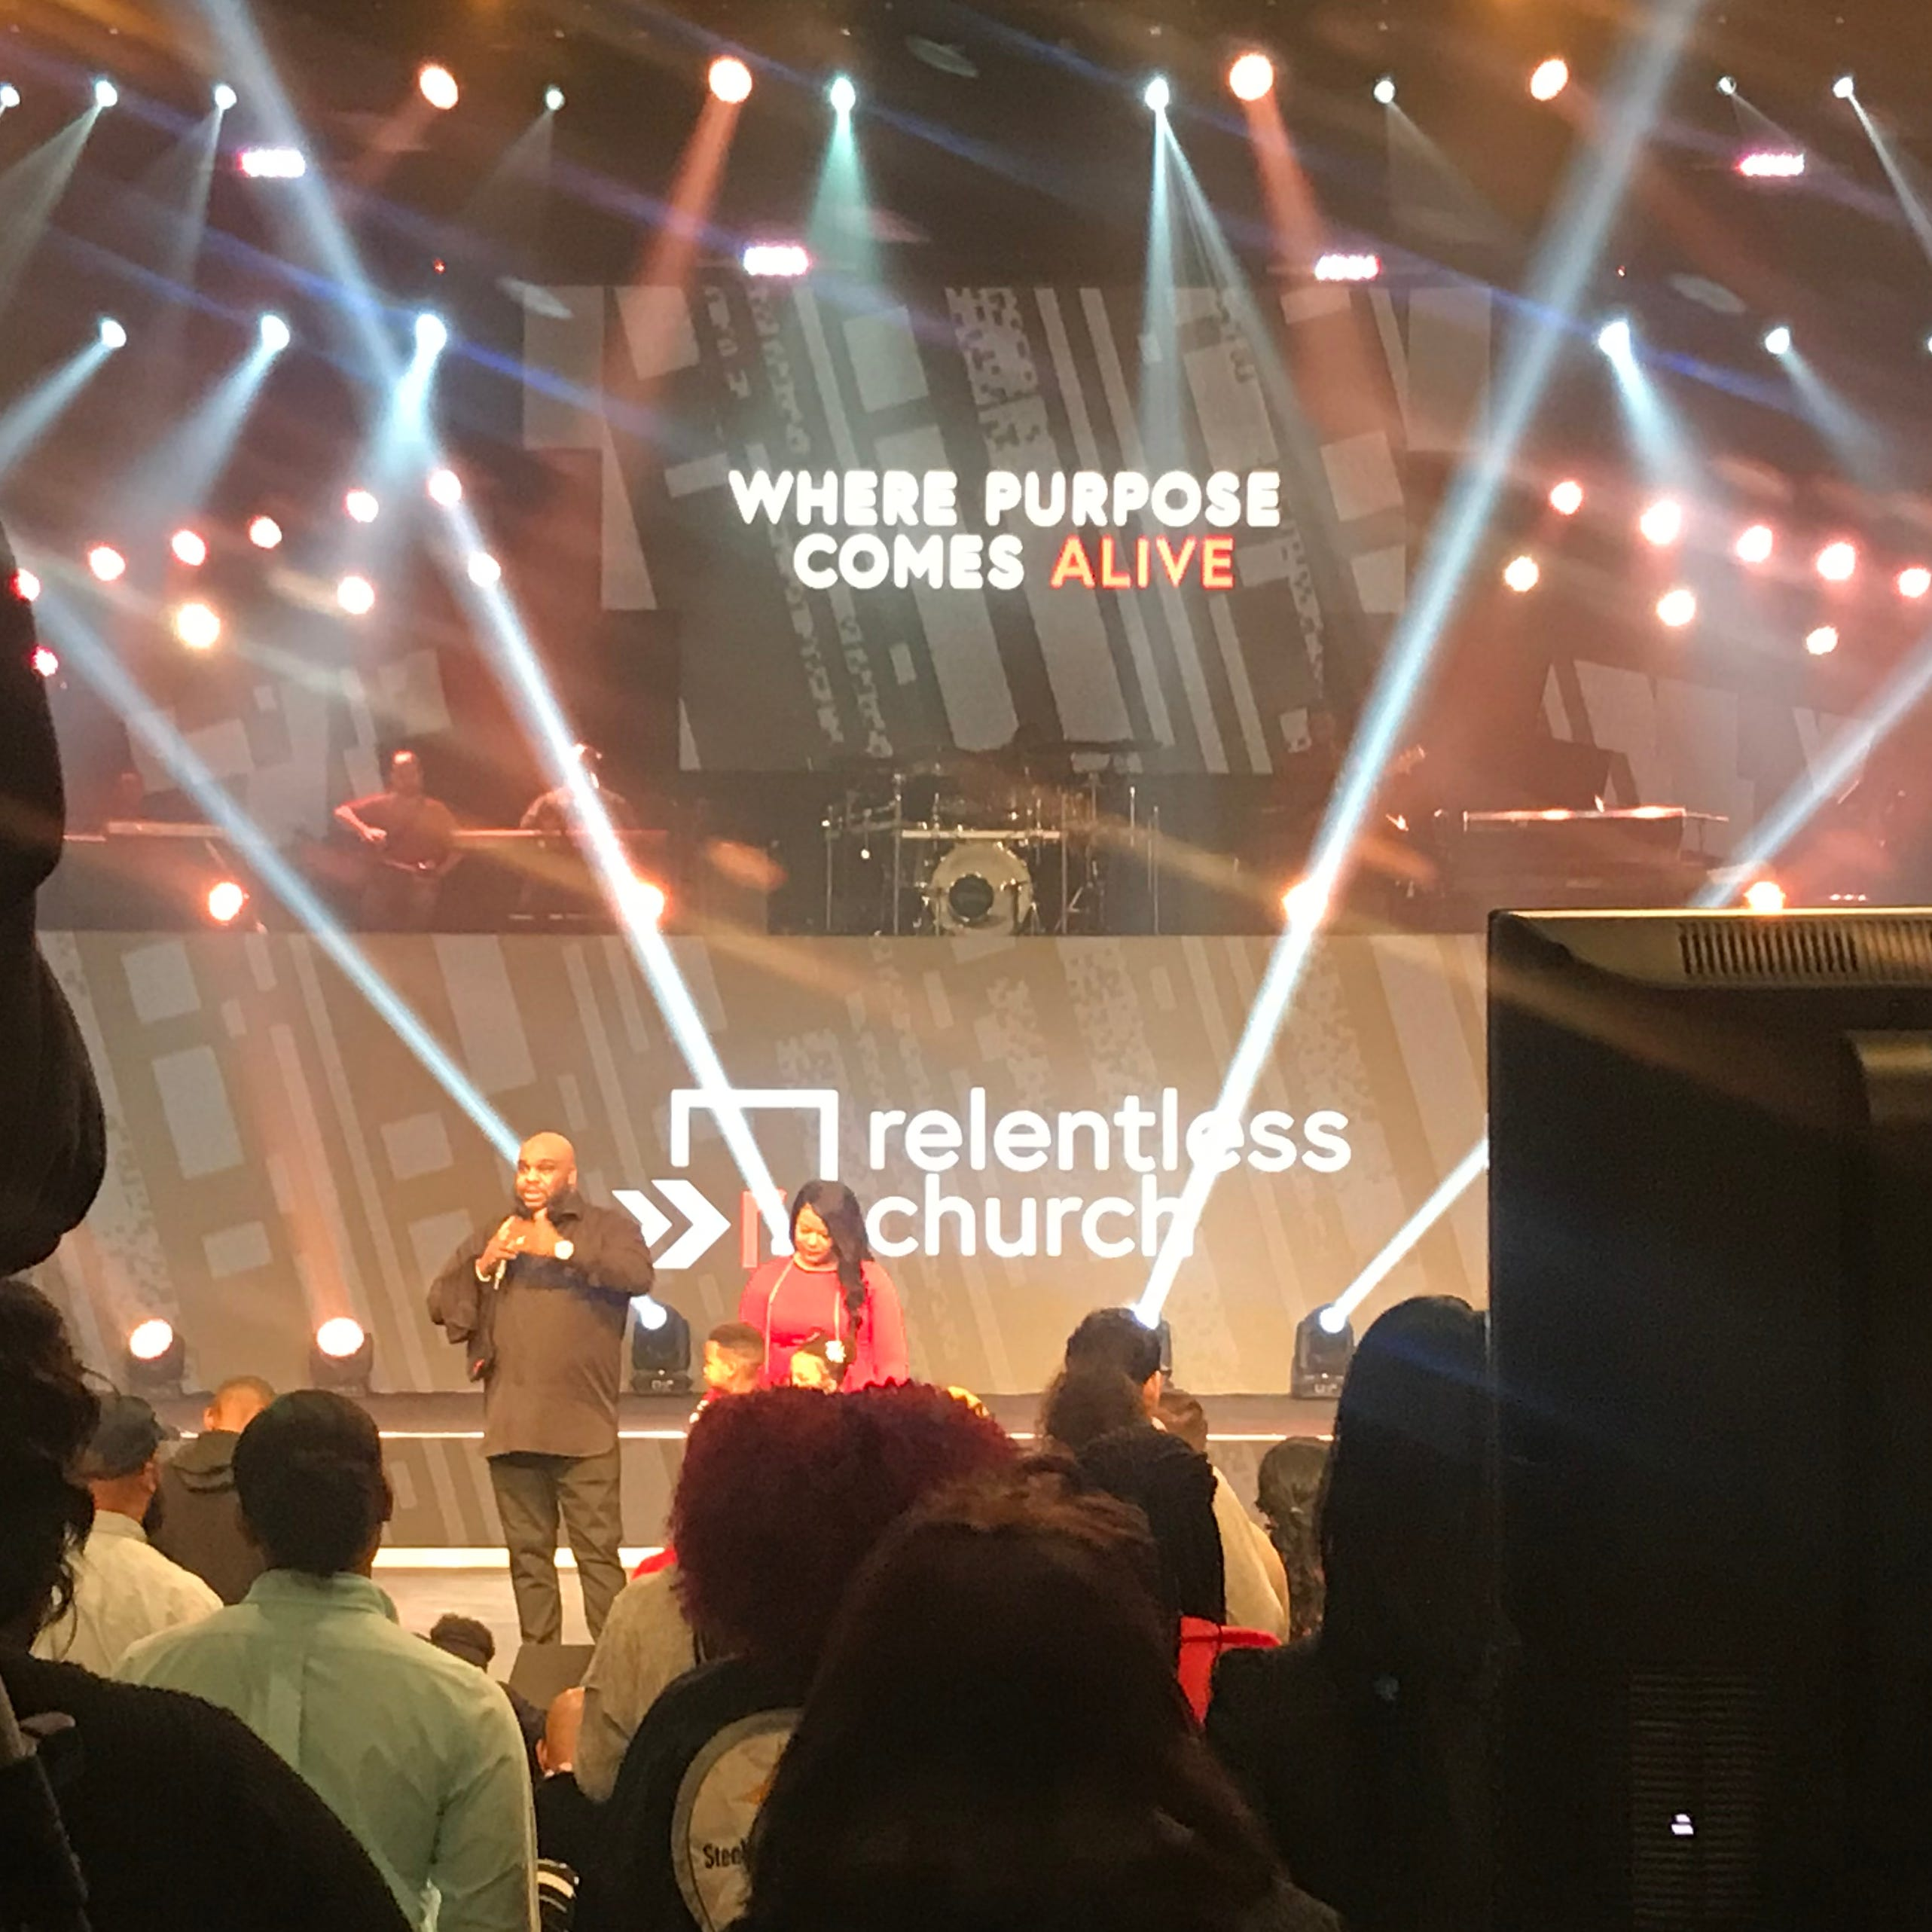 Pastor John Gray receives support from Relentless Church members after 'difficult' week